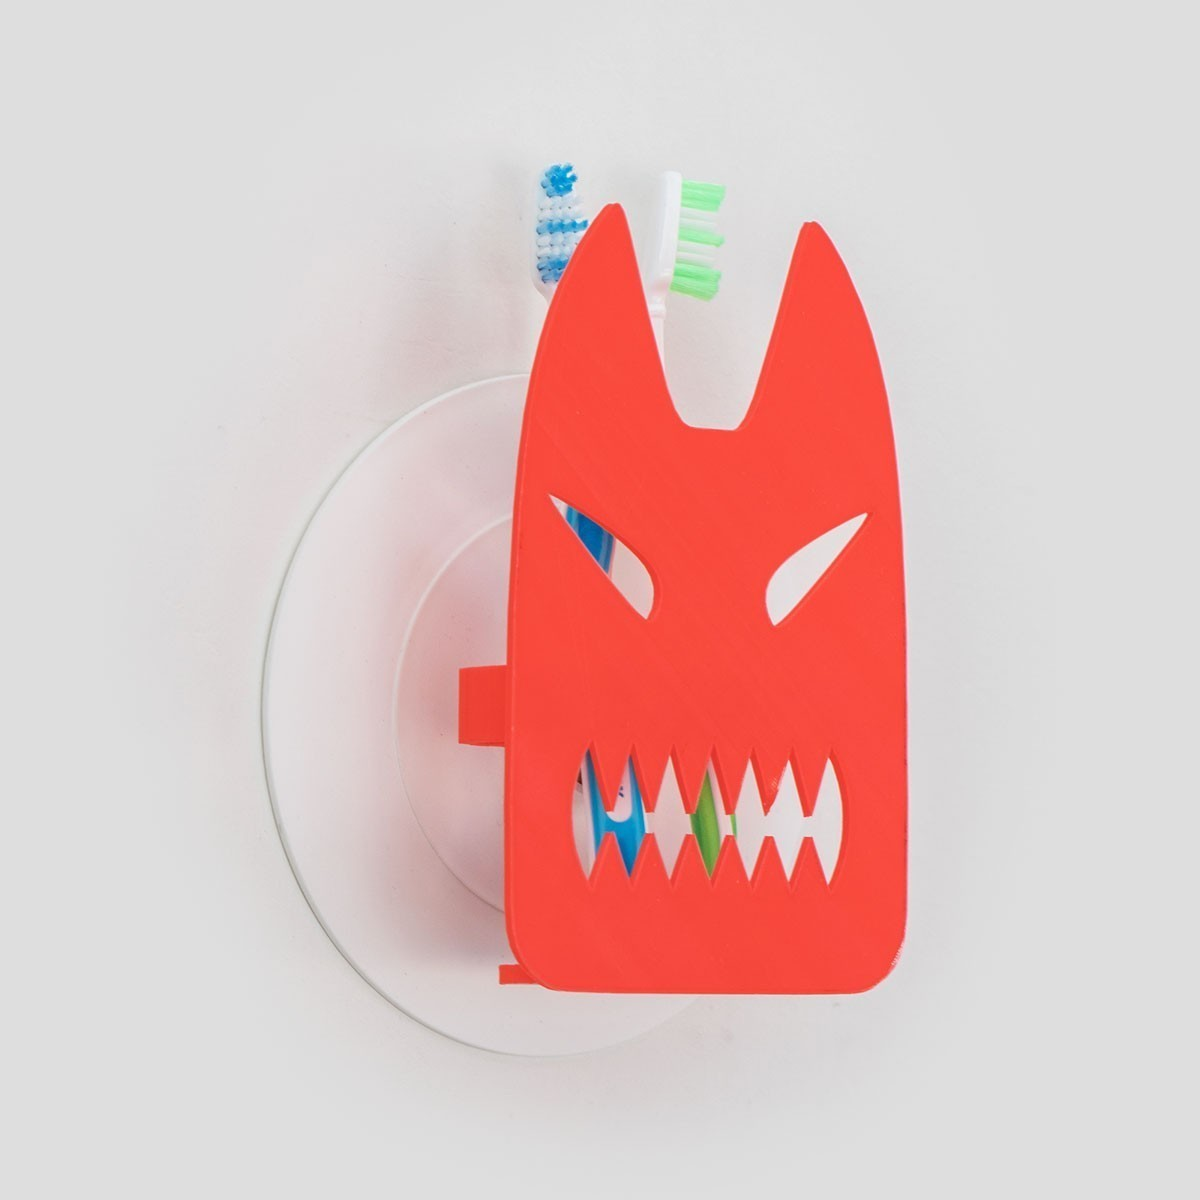 toothy_03.jpg Download free STL file Toothy - Toothbrush Holder • 3D printable design, EUMAKERS